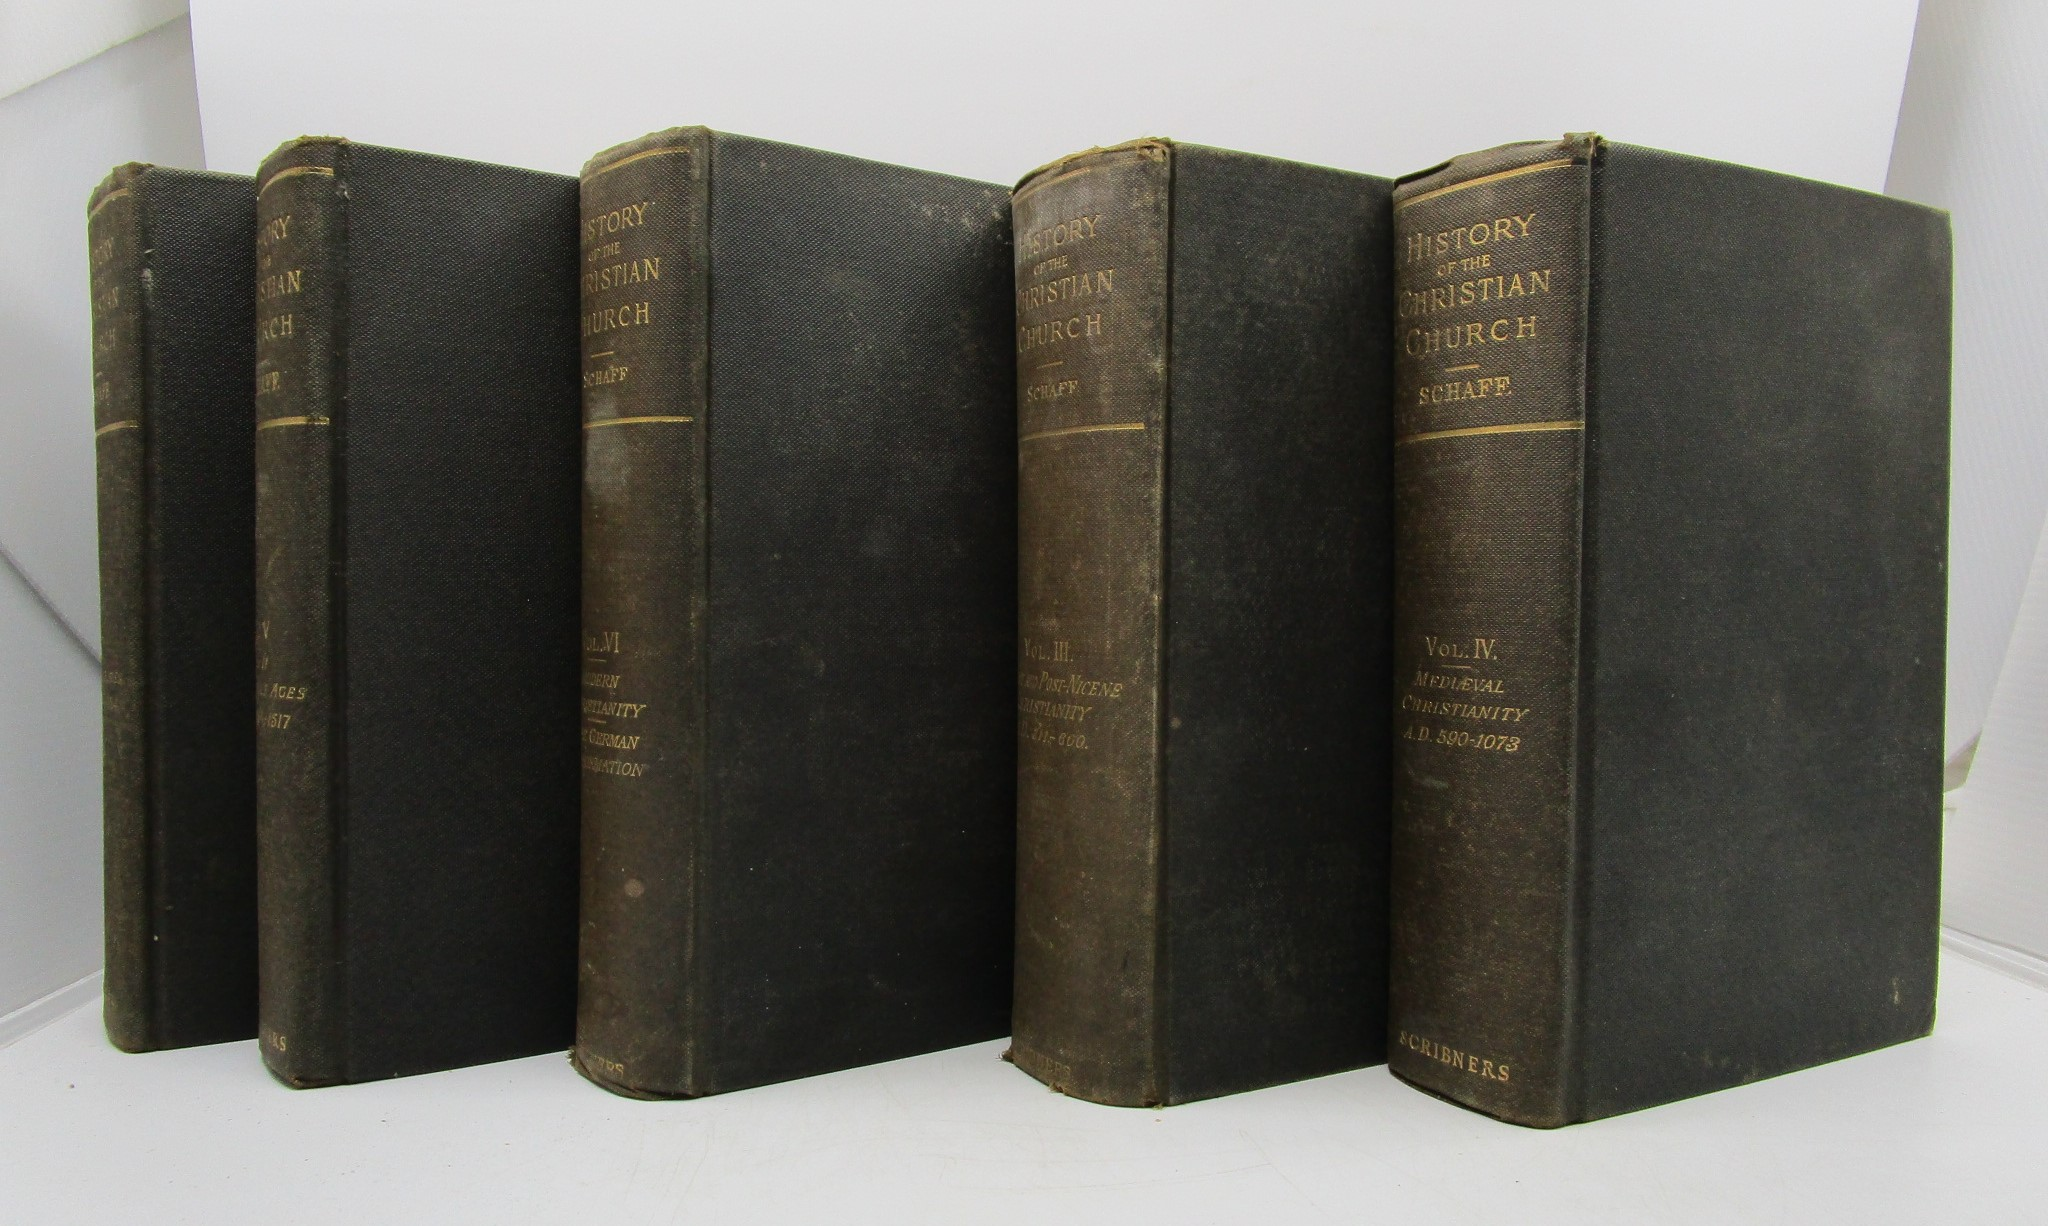 Image for History of the Christian Church (3-6 Volumes Only) From the Library of Morton H Smith